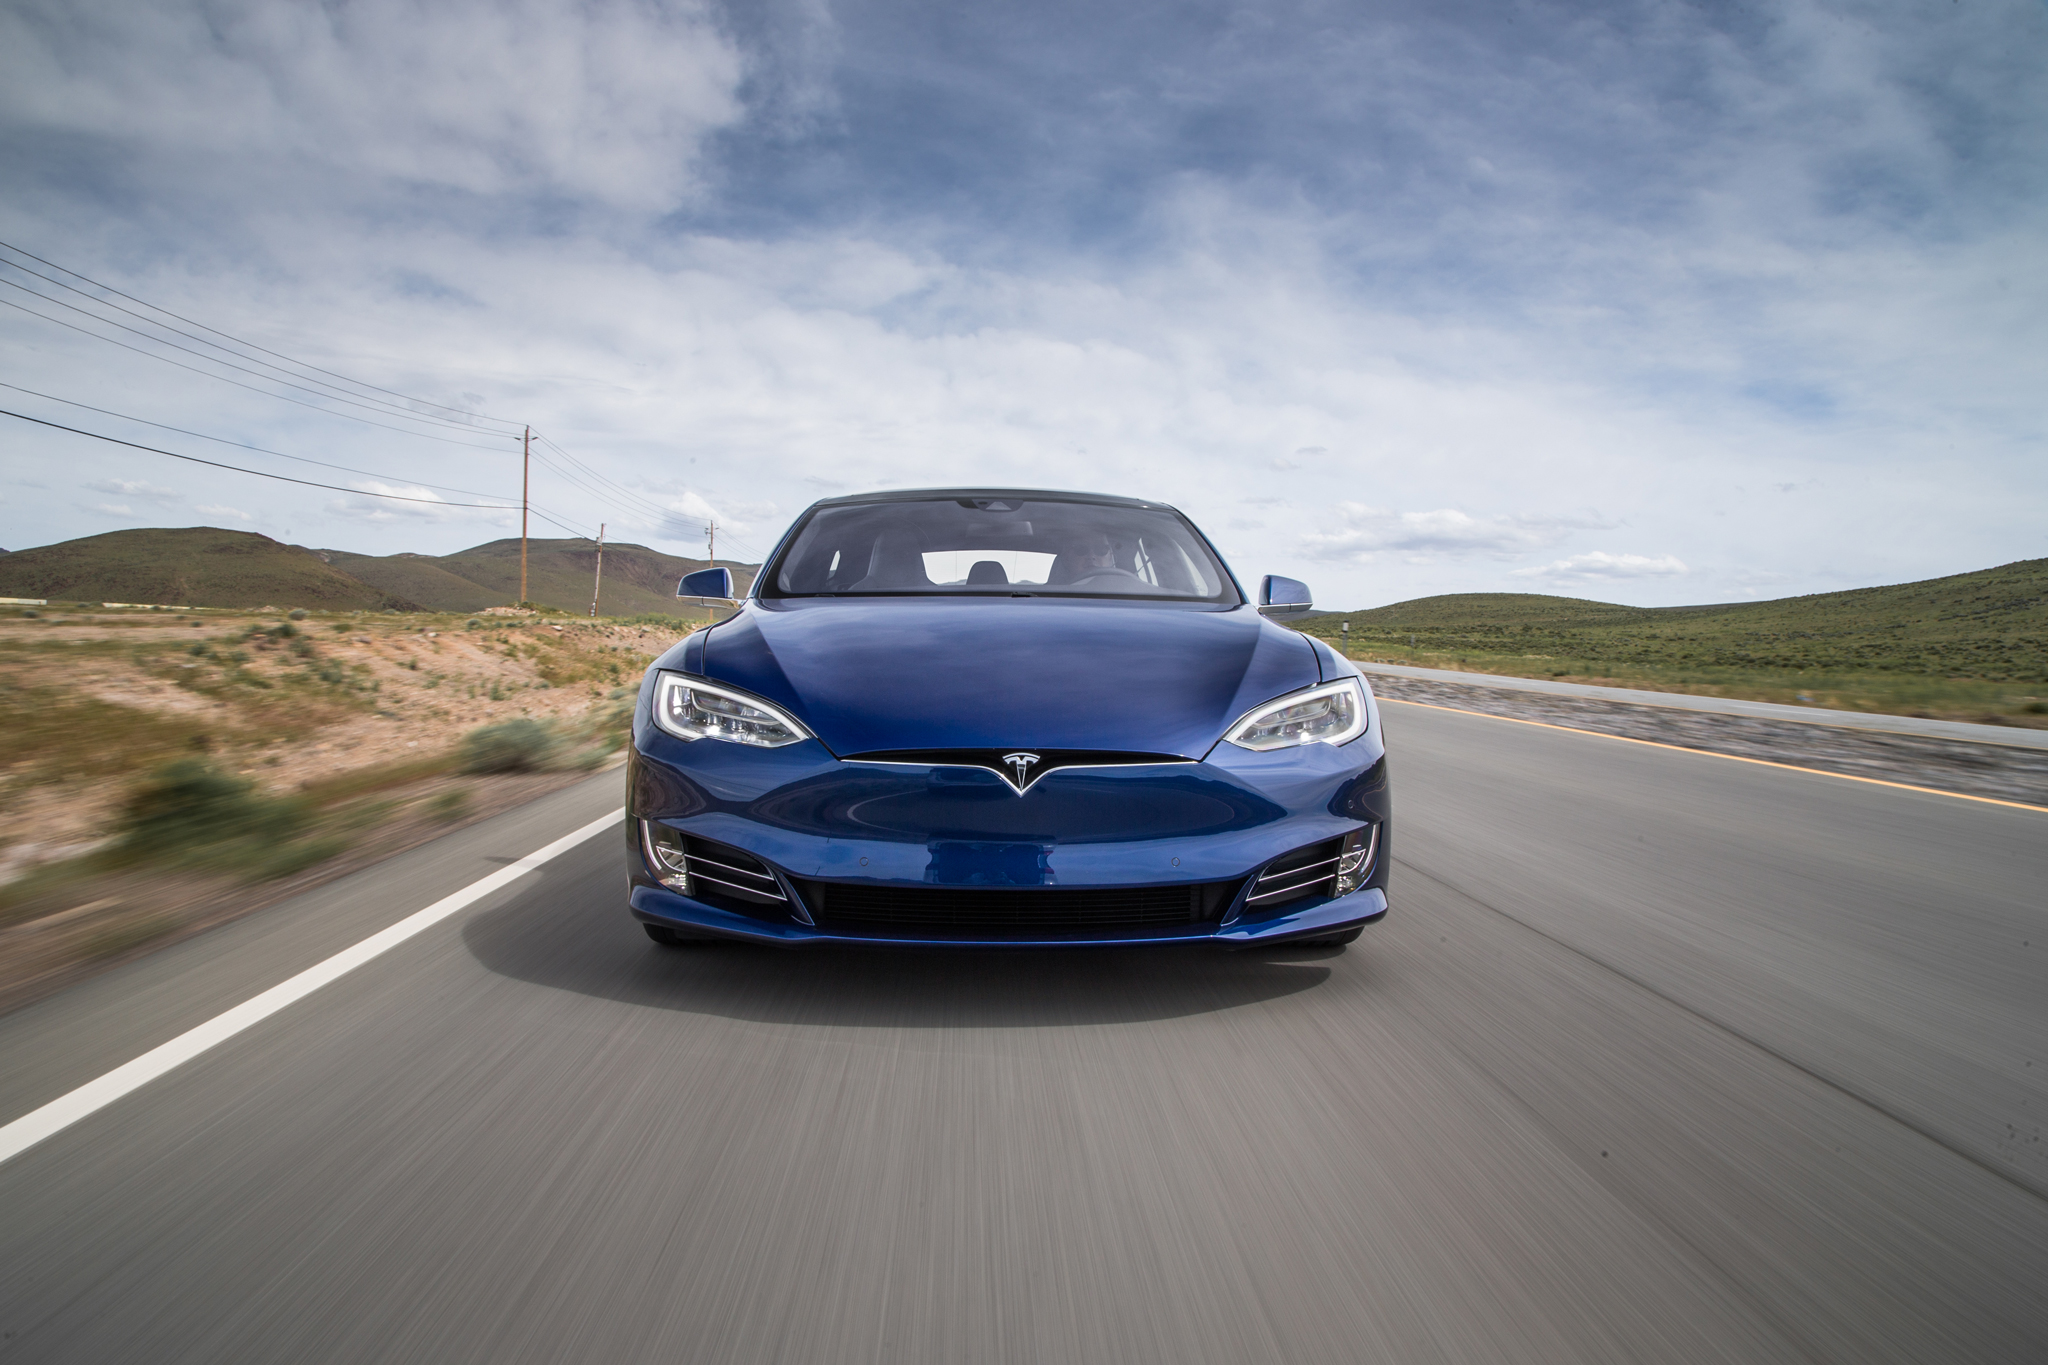 Elon Musk: The amped-up version of Tesla's Model 3 will cost $78,000